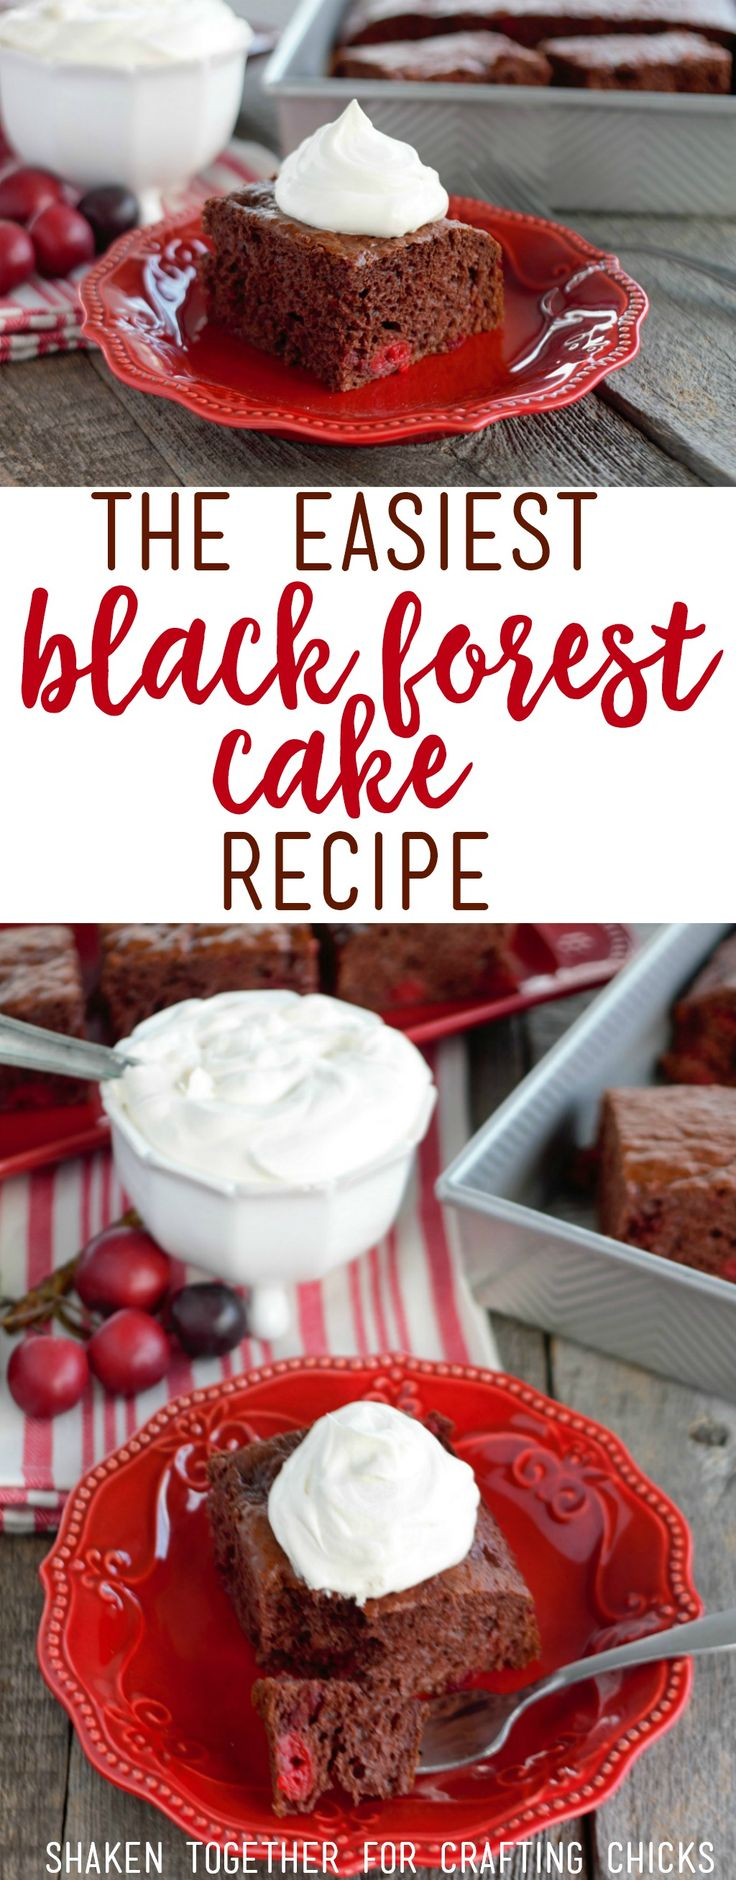 Need an unbelievably easy dessert? You'll love this Black Forest Cake Recipe...